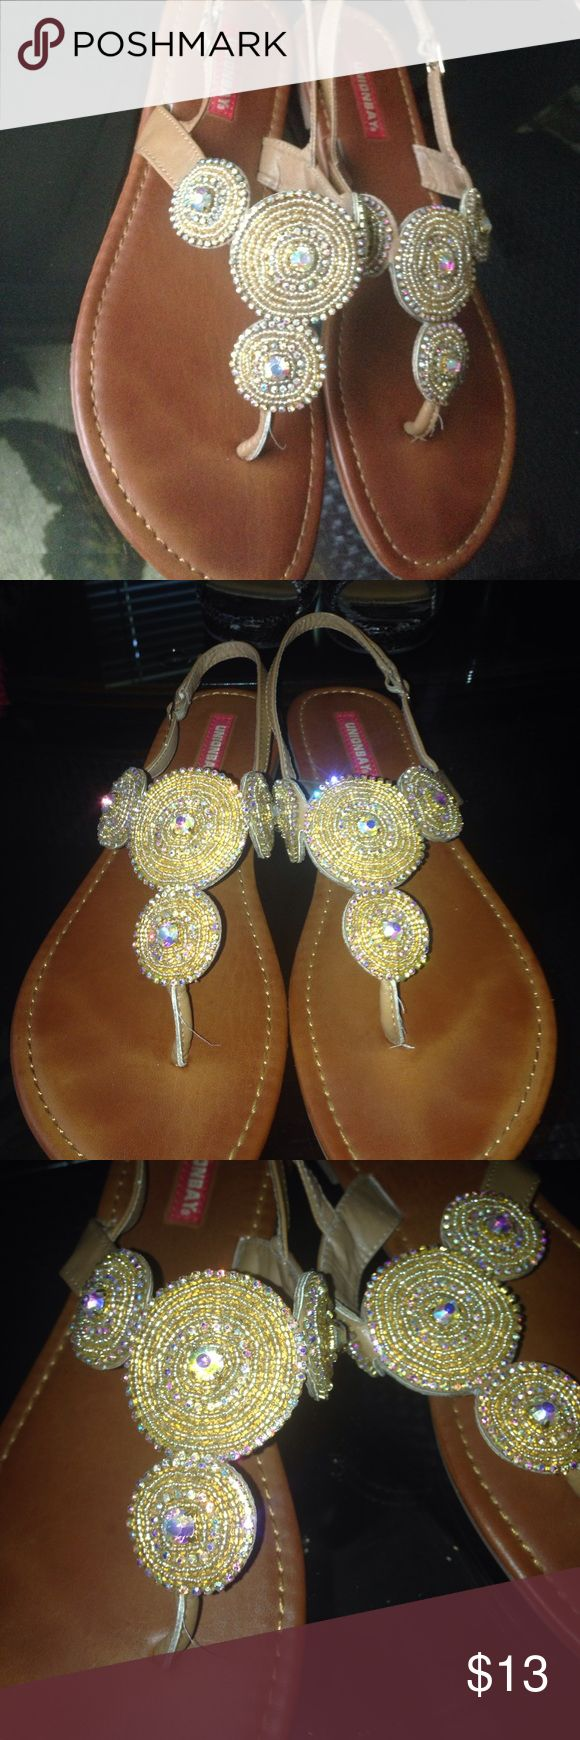 Cute sparkly sandals ✨ Make offer! Sparkly sandals. Size 9 1/2. **Are peeling a bit at the top but not major! (See photo) any questions let me know! 😊 Shoes Sandals